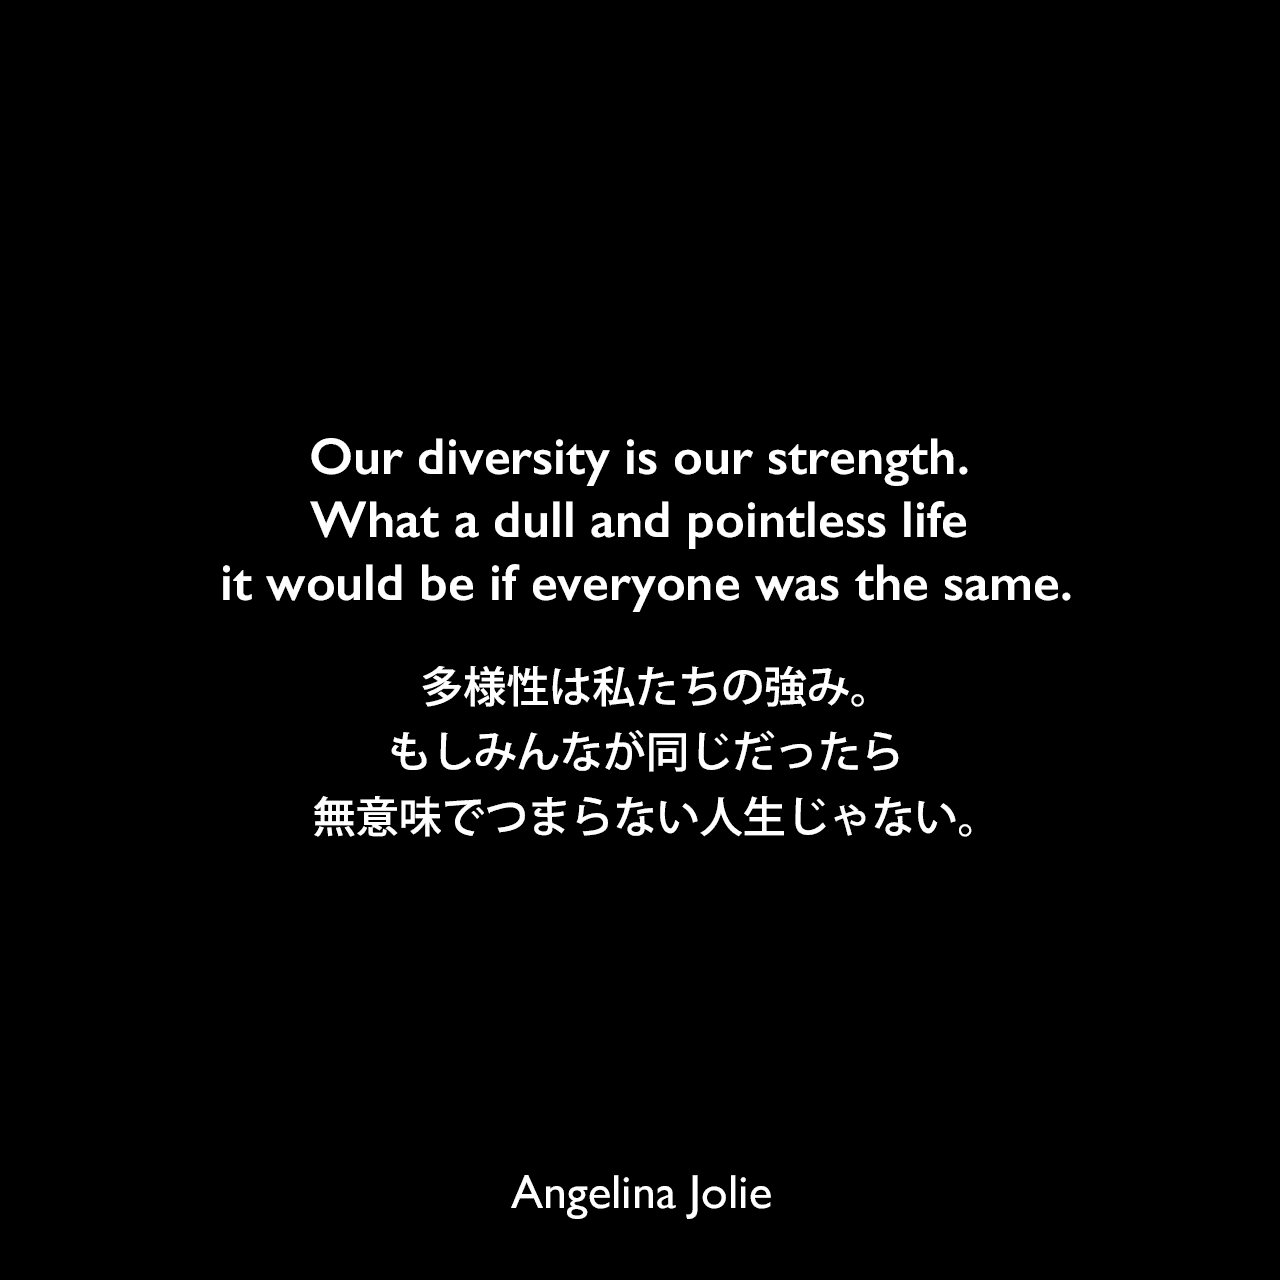 Our diversity is our strength. What a dull and pointless life it would be if everyone was the same.多様性は私たちの強み。もしみんなが同じだったら無意味でつまらない人生じゃない。Angelina Jolie